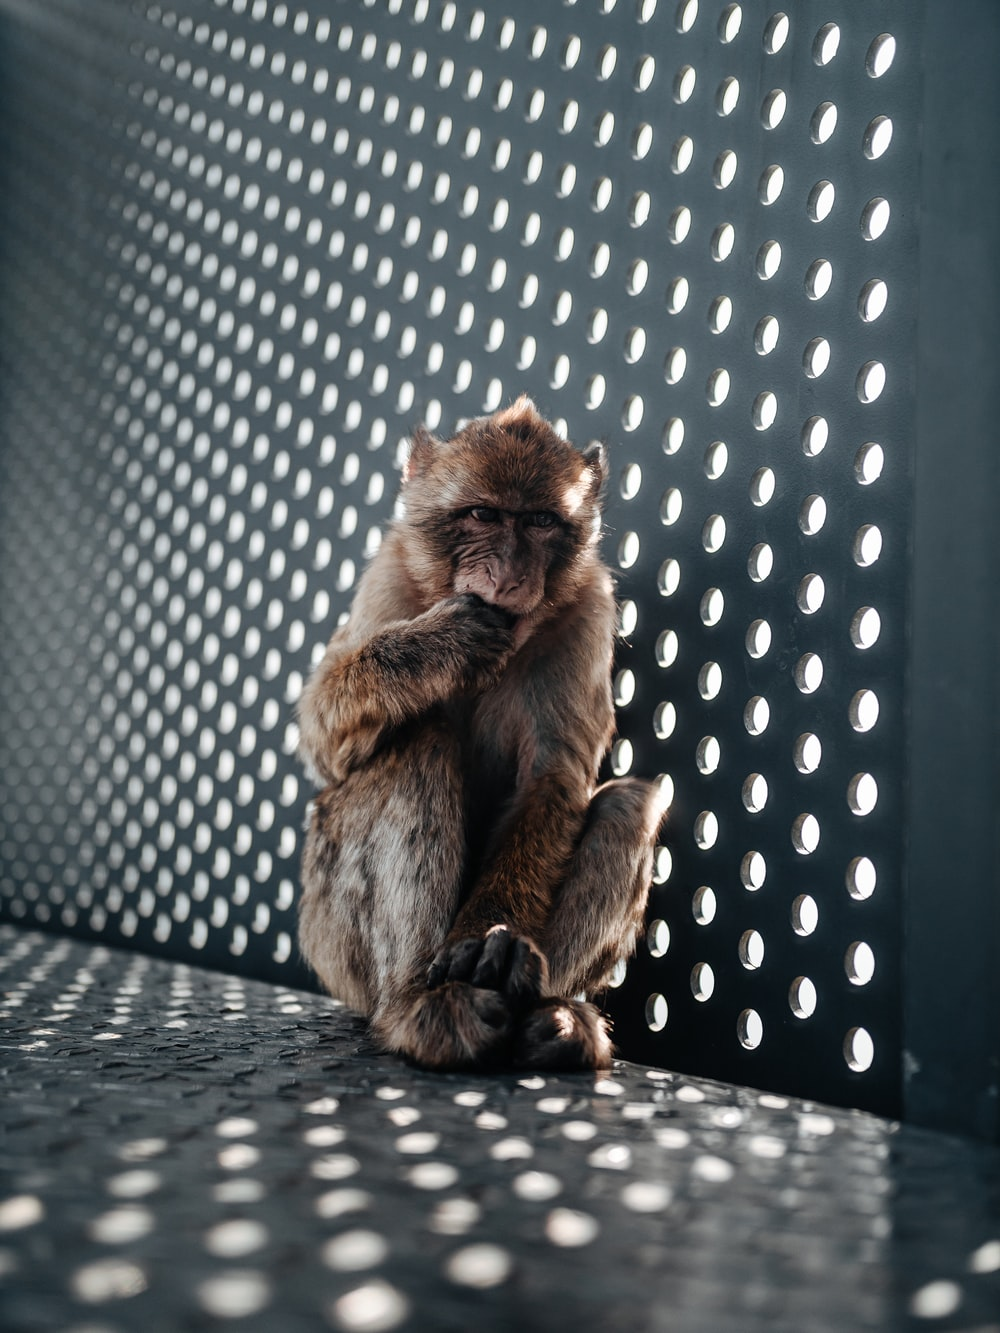 Macaques Pictures Download Free Images On Unsplash Images, Photos, Reviews